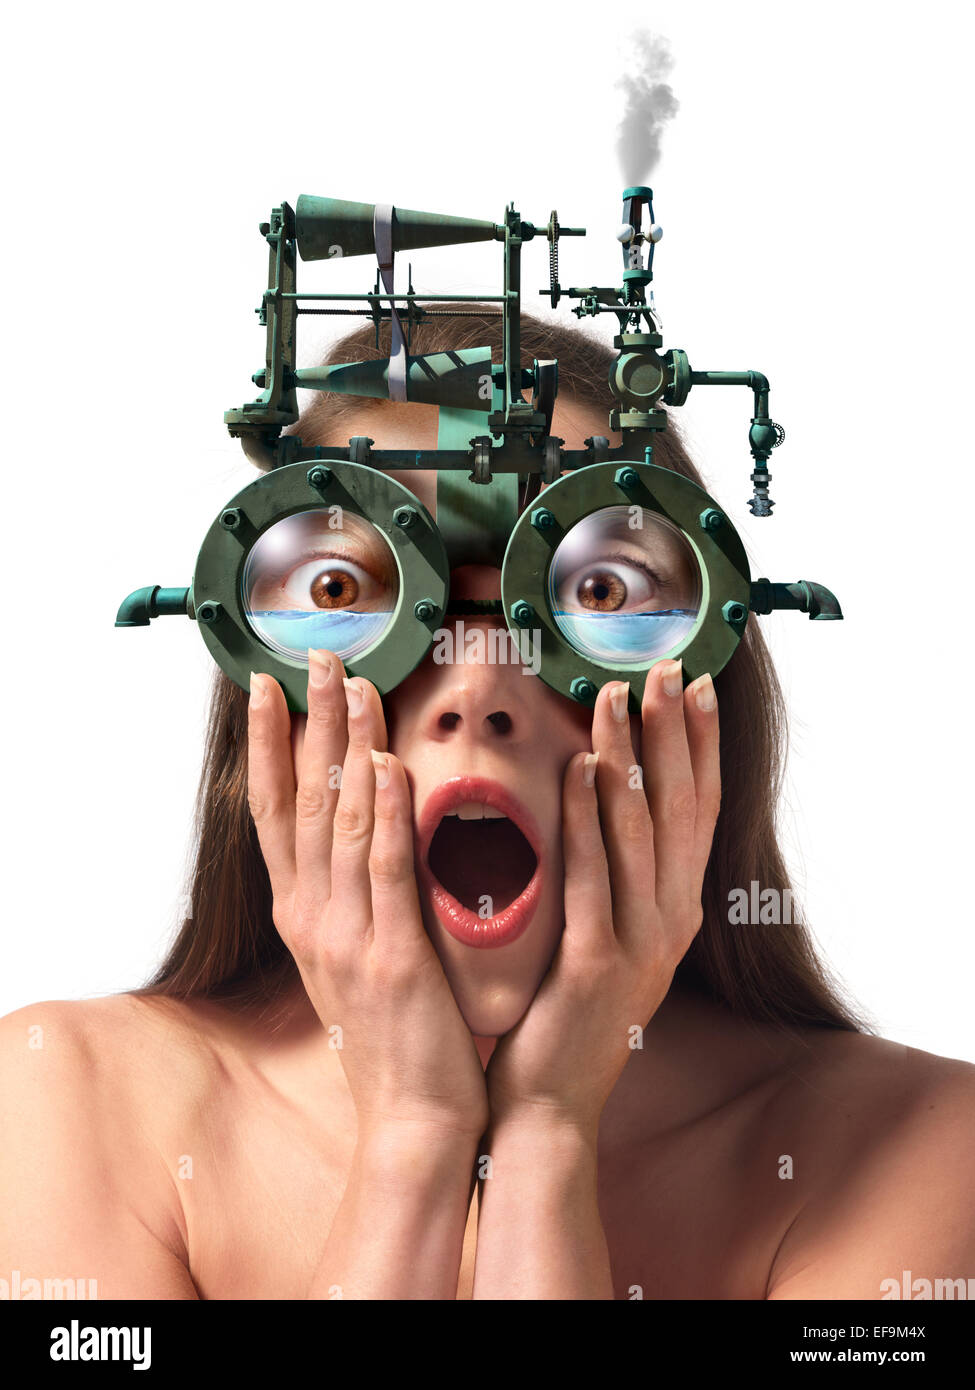 Fantasy image of woman wearing steam powered eyeglasses that are filling up with water - Stock Image